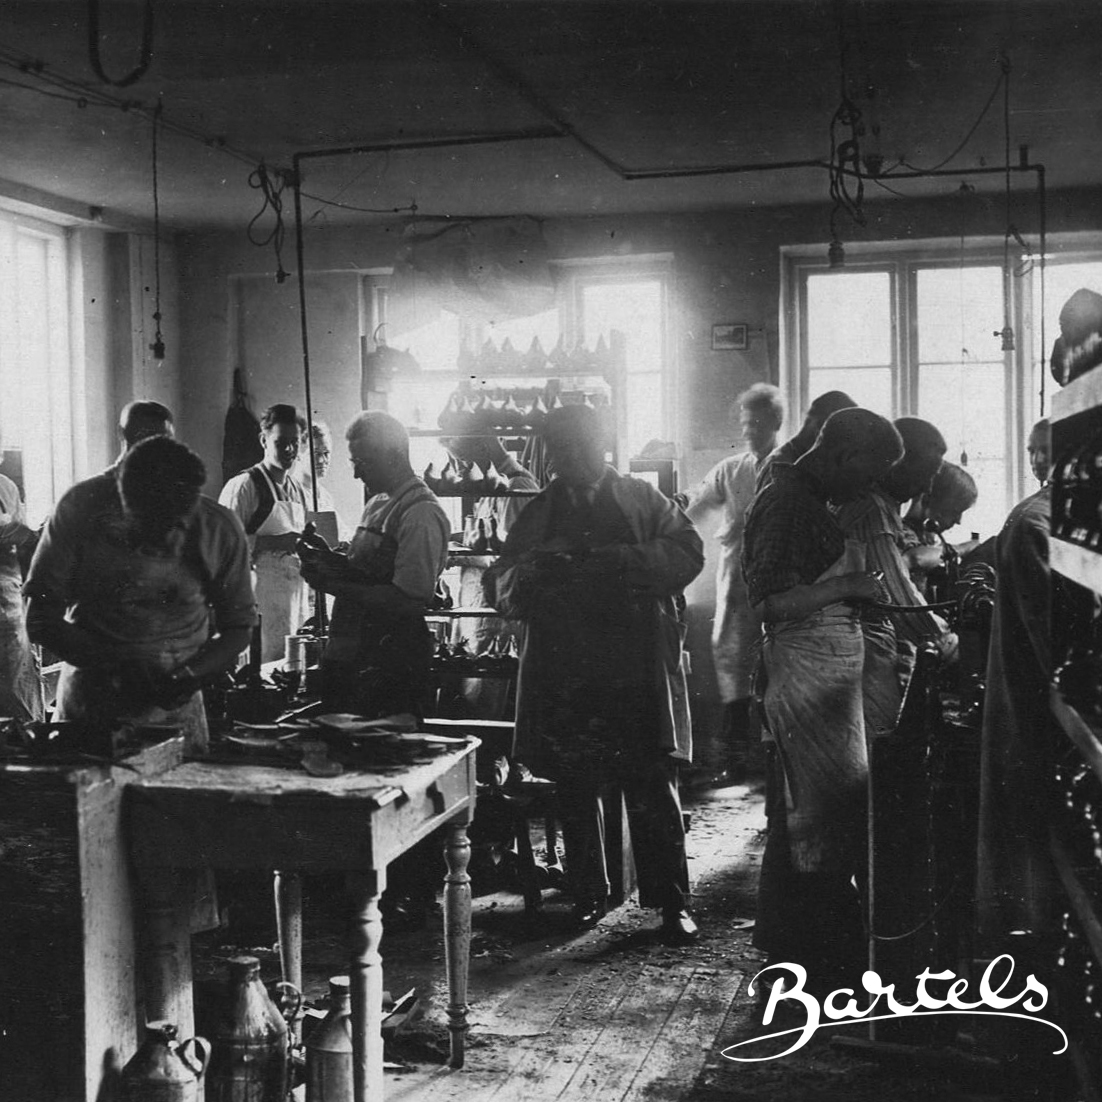 1920 - The Danish shoe brand, Bartels since 1920, was first established under the name 'Bartels Damernes Sko' by Louie and Emma Bartels. During the WWI, Emma and Louie moved from Germany to Denmark with the dream of starting up their own shoe factory founded on high quality, comfort, and impeccable craftsmanship, all wrapped in beautiful designs. In their apartment in Sommerstedsgade in Copenhagen, Bartels since 1920 took its first steps onto the timeless designs that still prevail today.